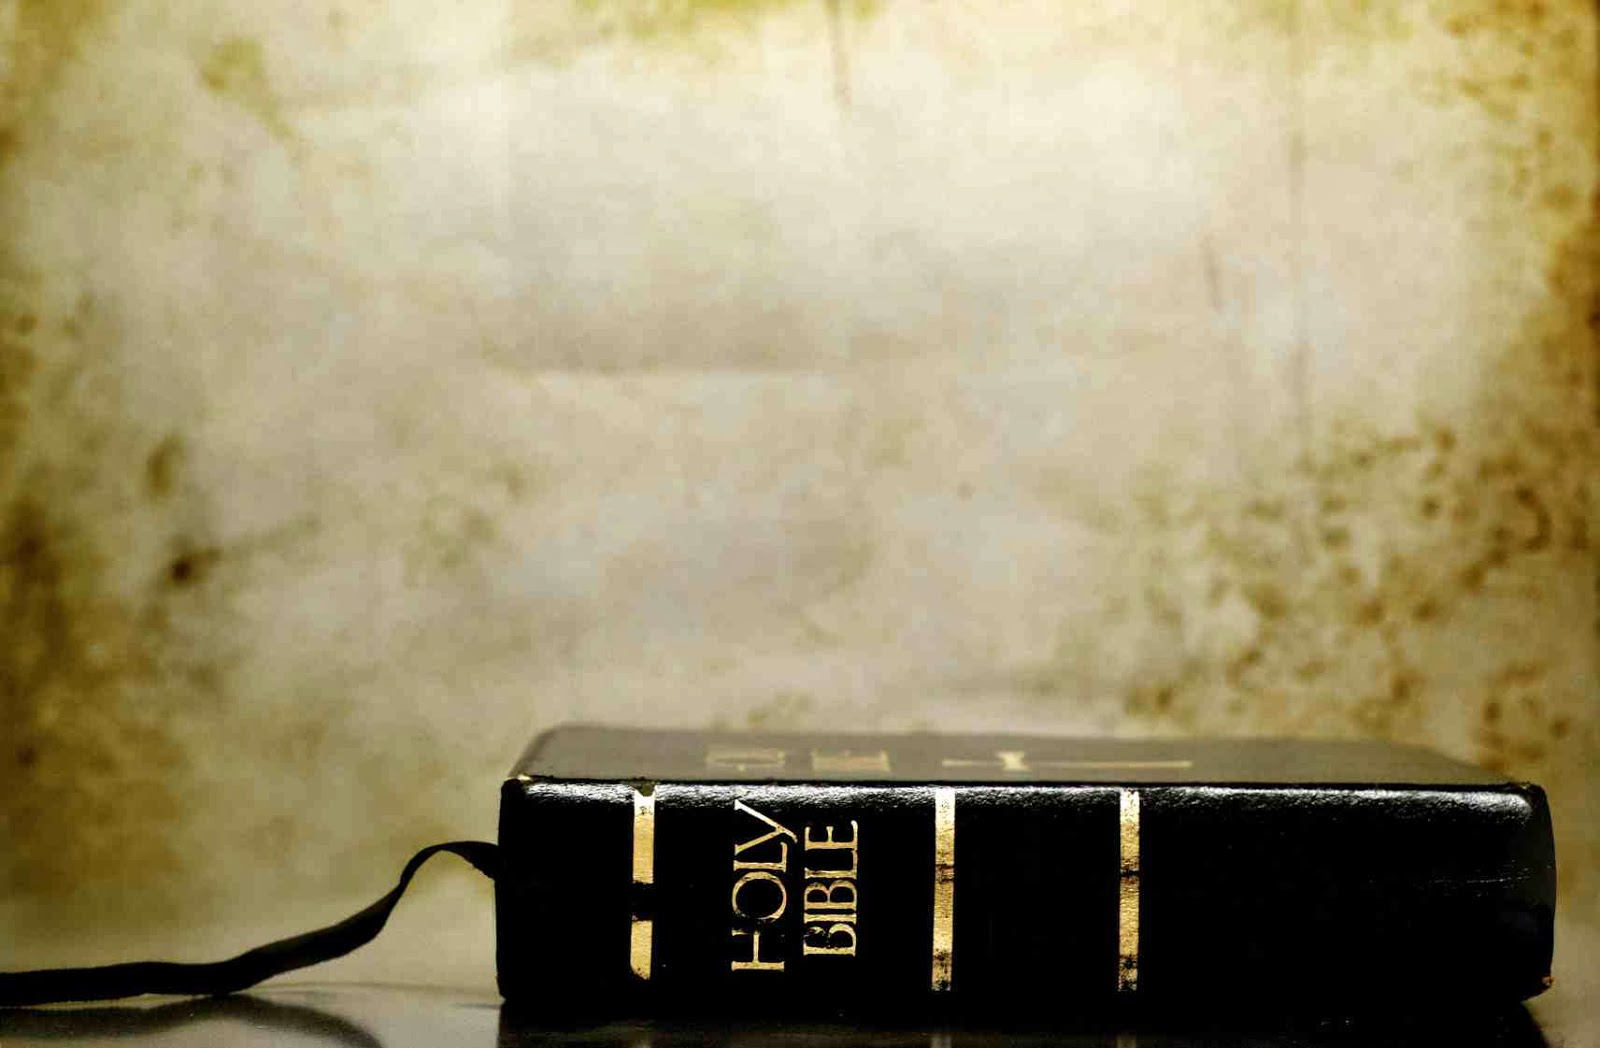 Why crucifixion? Arguments from Bible